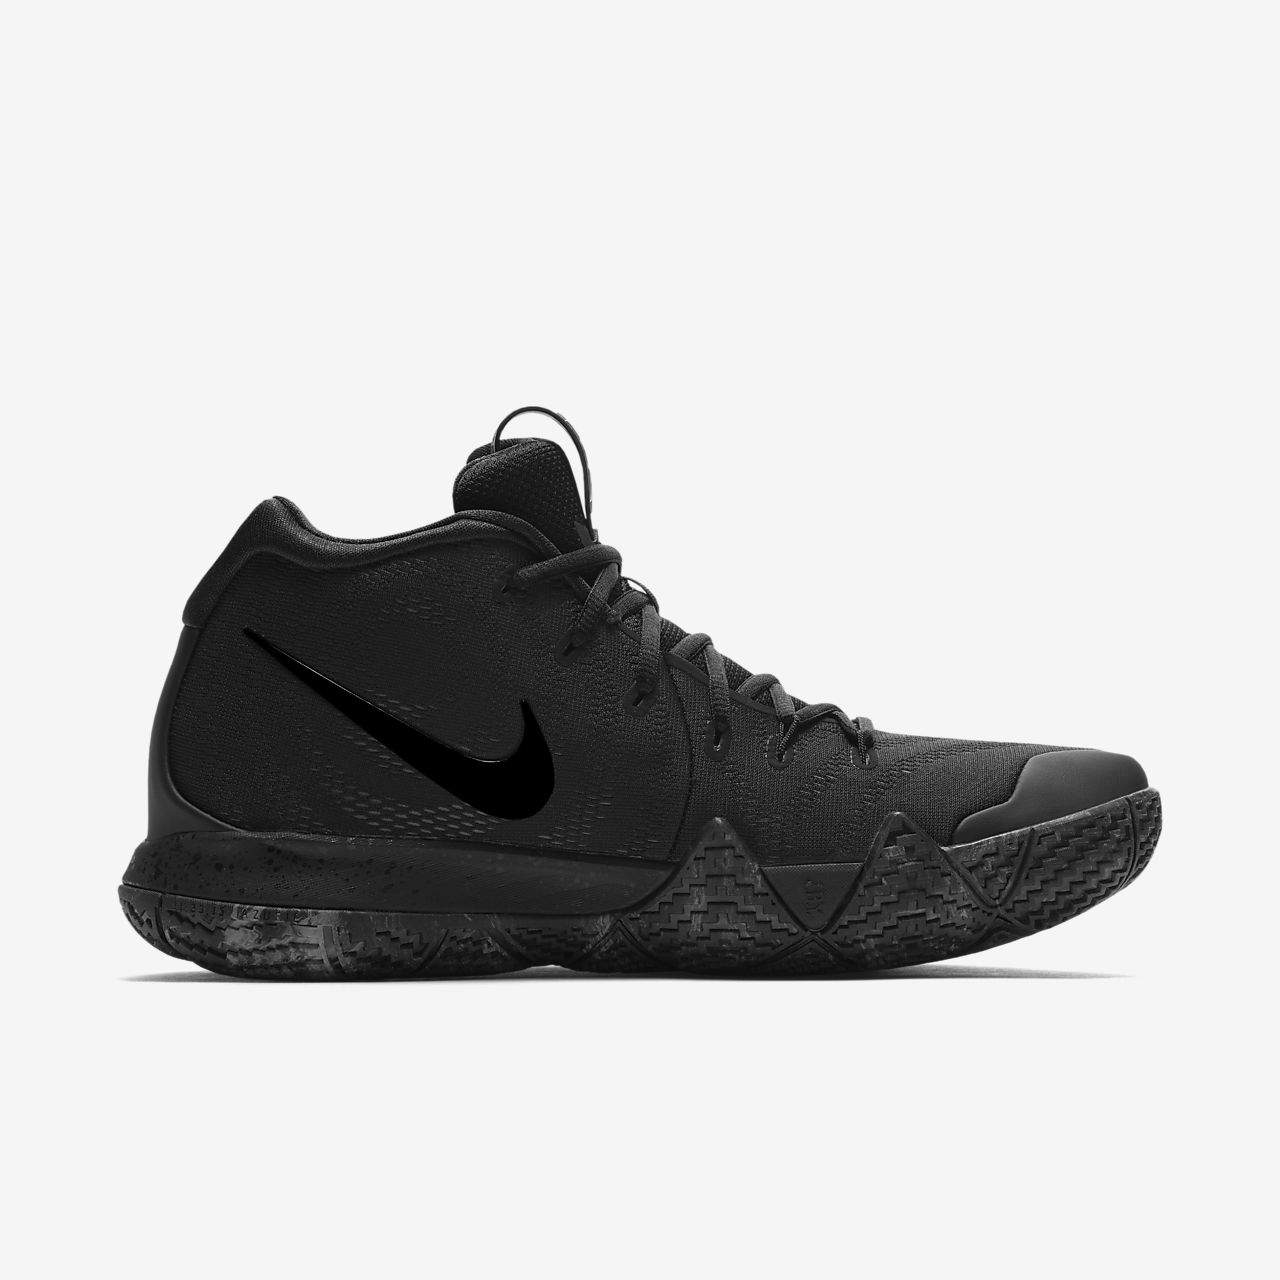 best cheap 66915 f249b Low Resolution Kyrie 4 Basketball Shoe Kyrie 4 Basketball Shoe